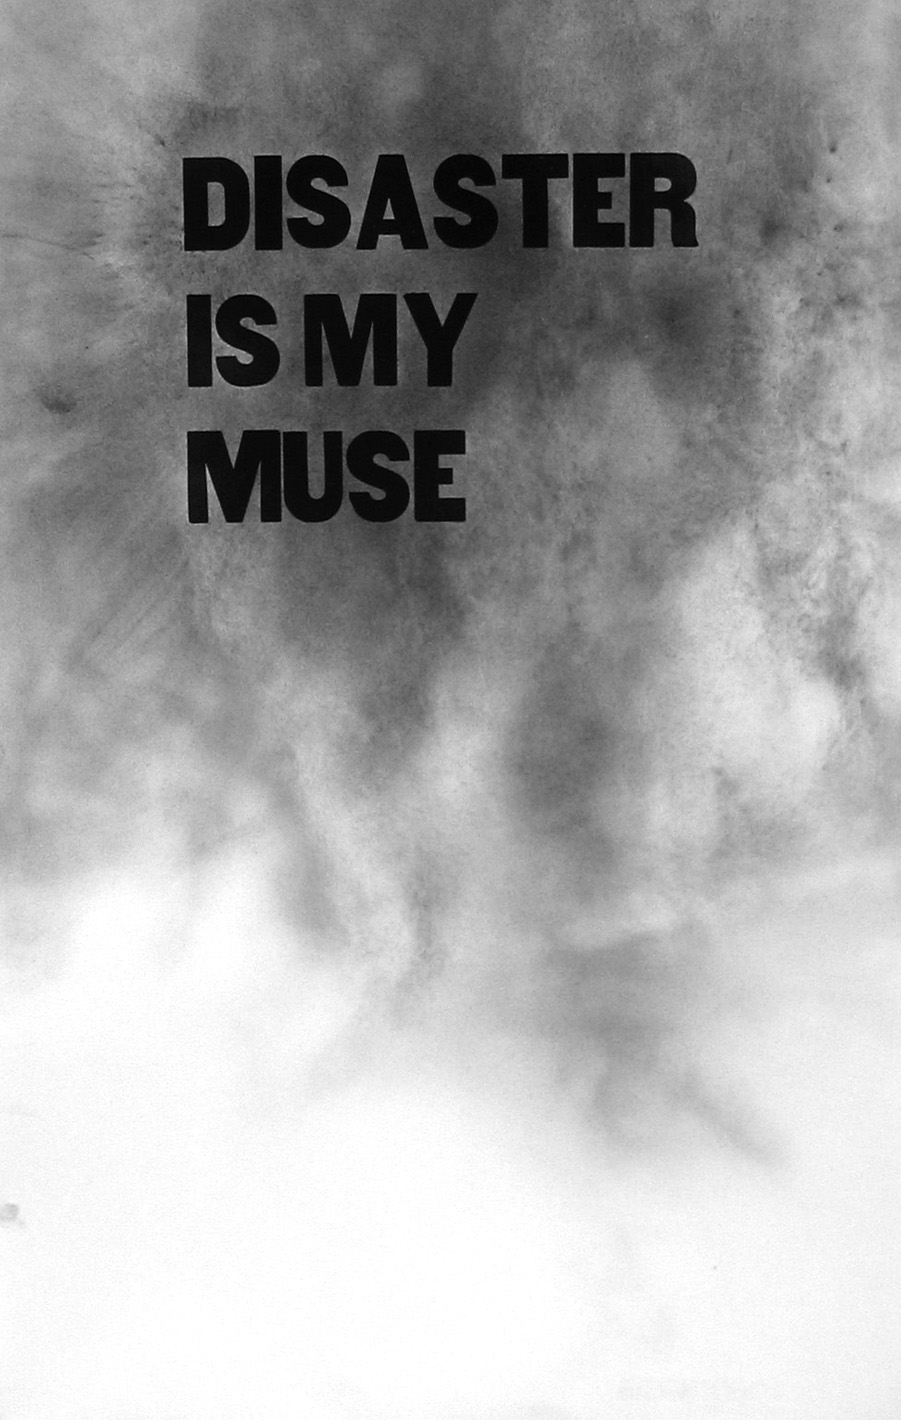 Disaster is my muse